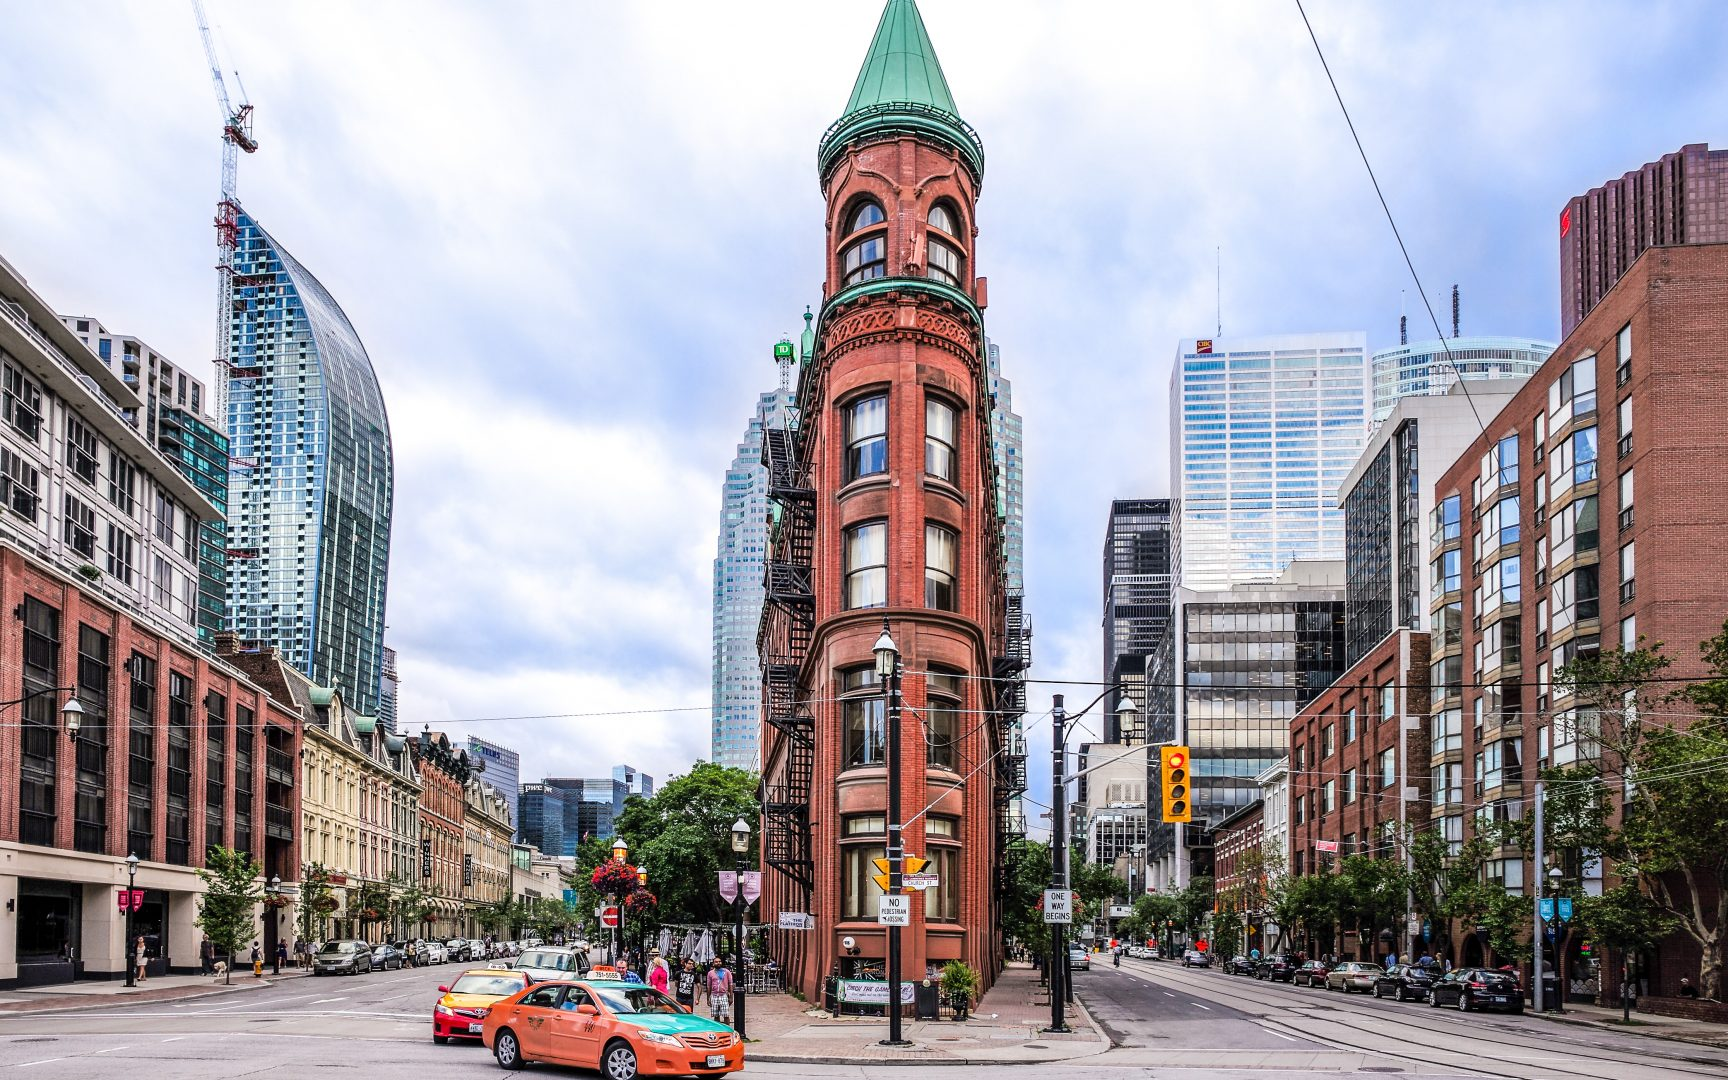 The Gooderham Building, also known as the Flatiron Building, is an historic office building at 49 Wellington Street East. Photo by Shane Carslake for SHANE.